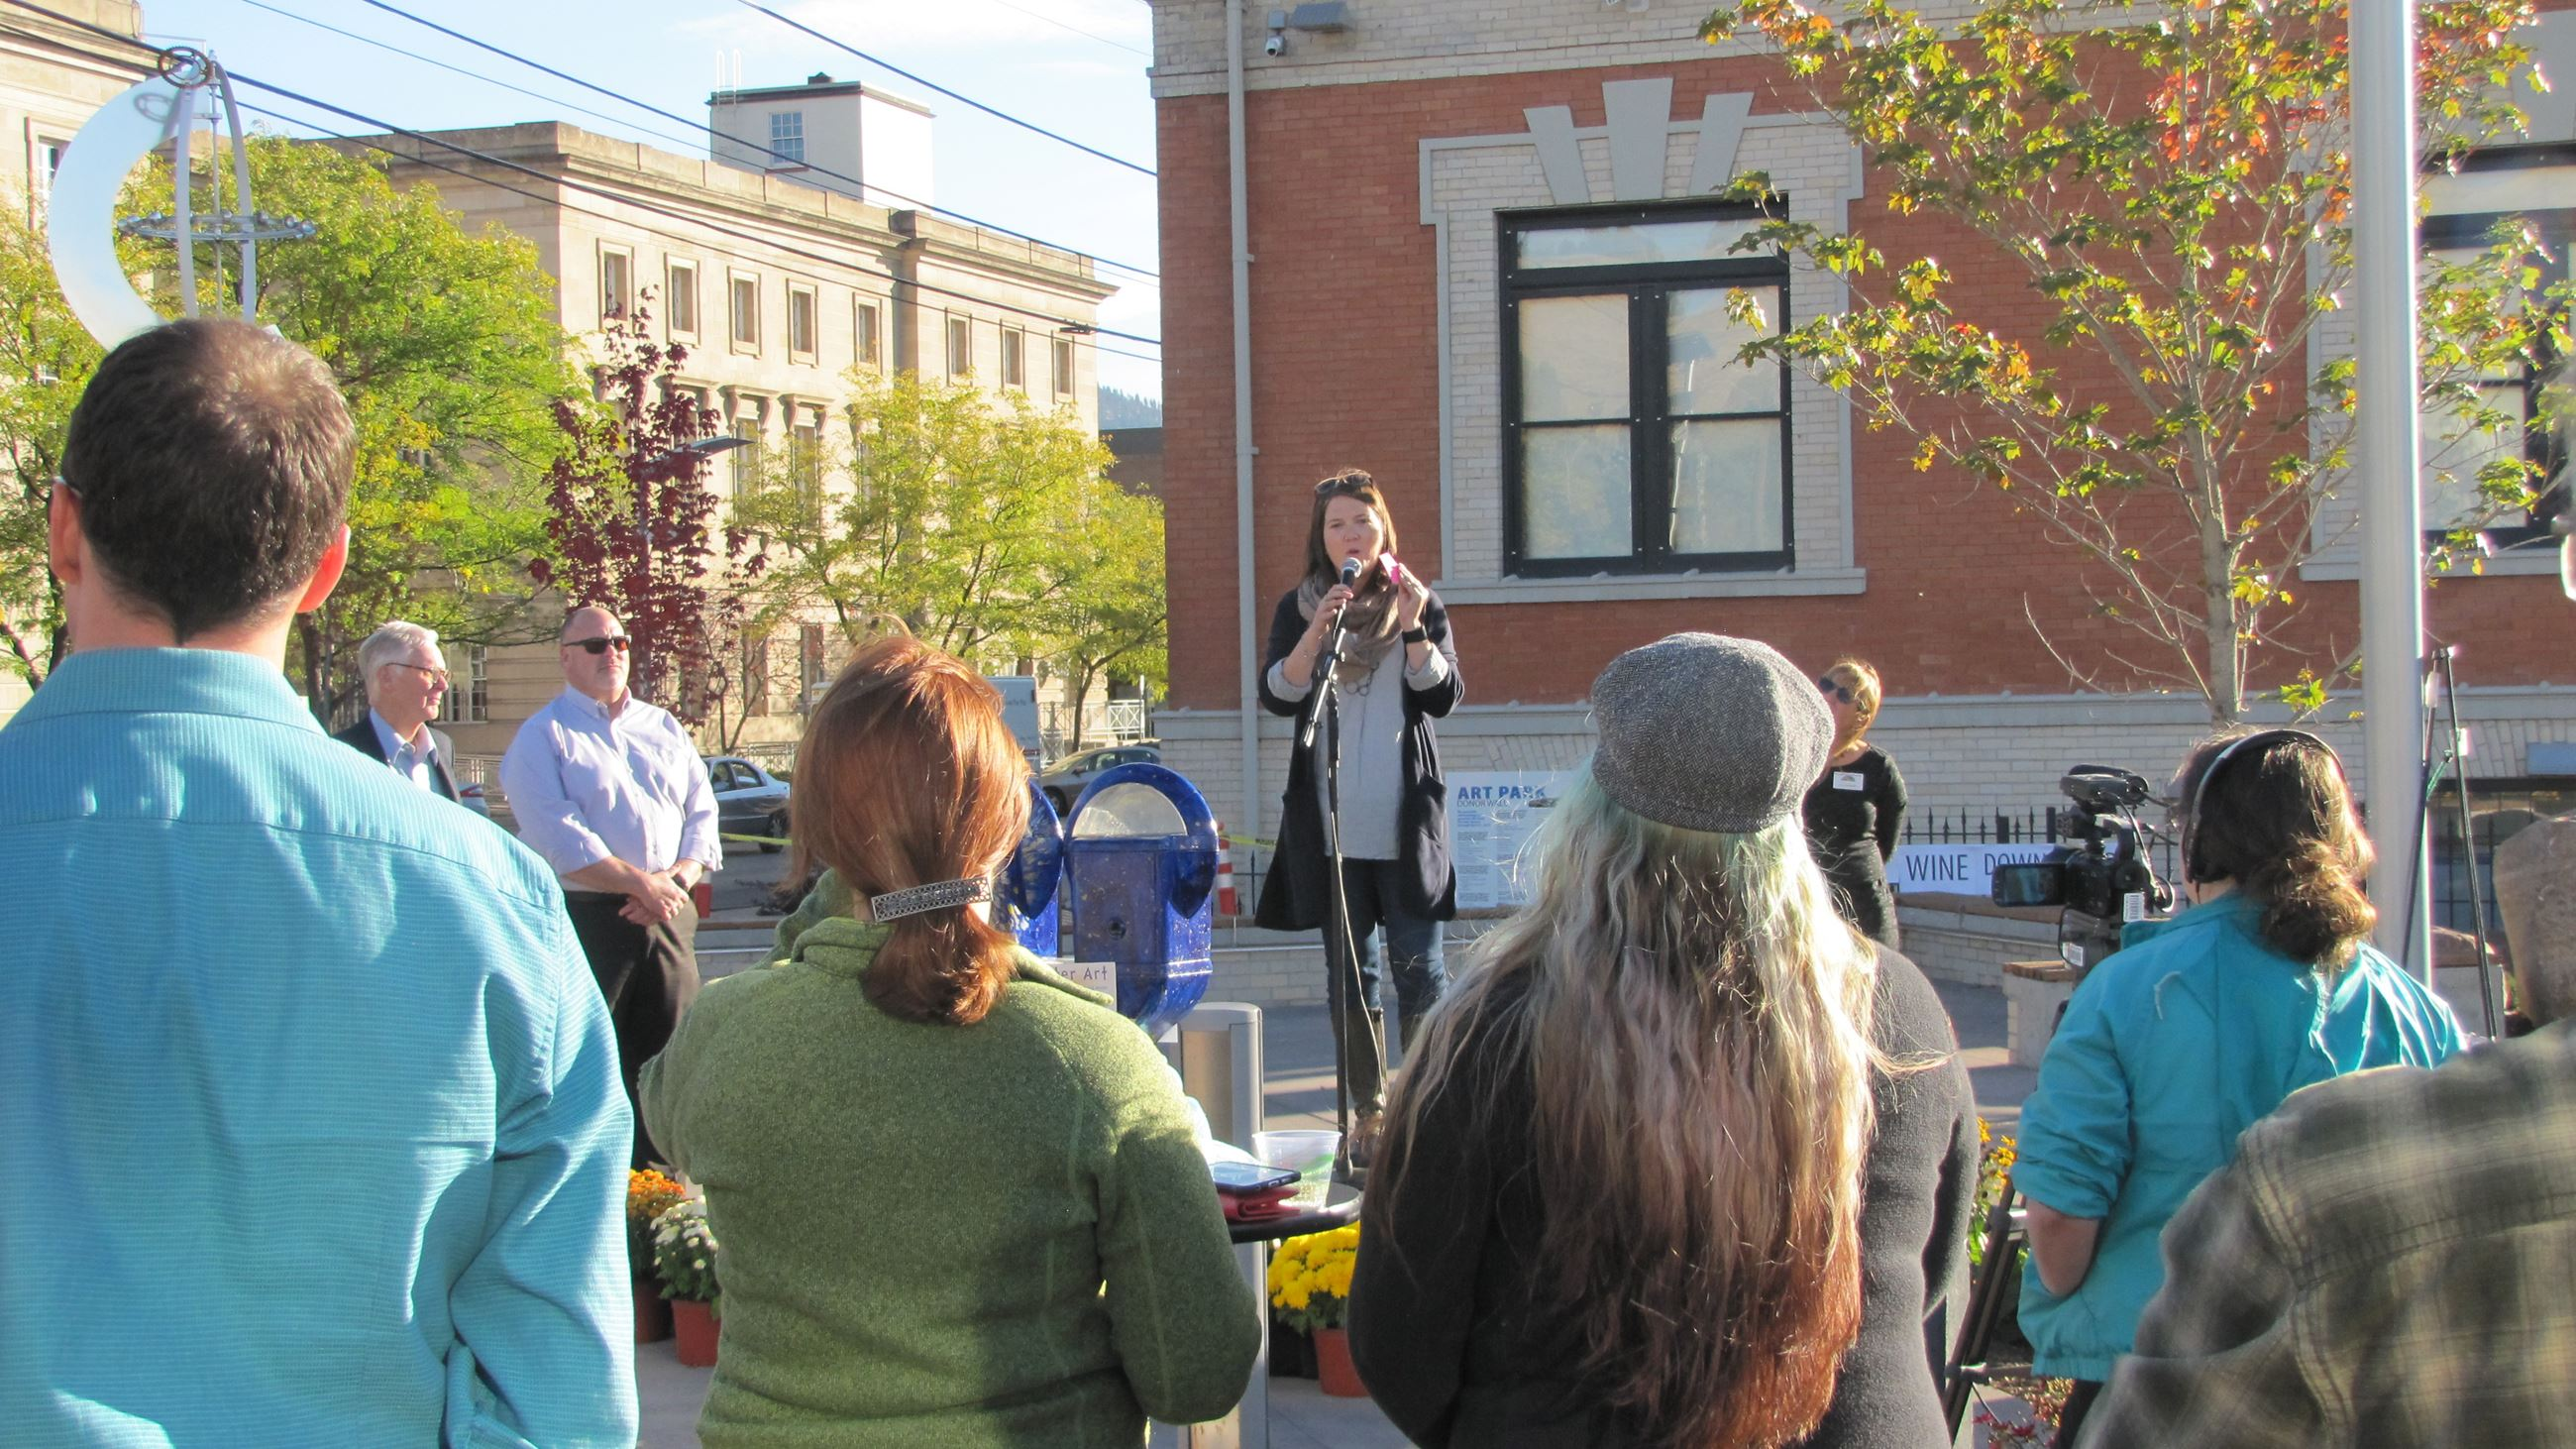 Allison Mouch speaking to the crowd